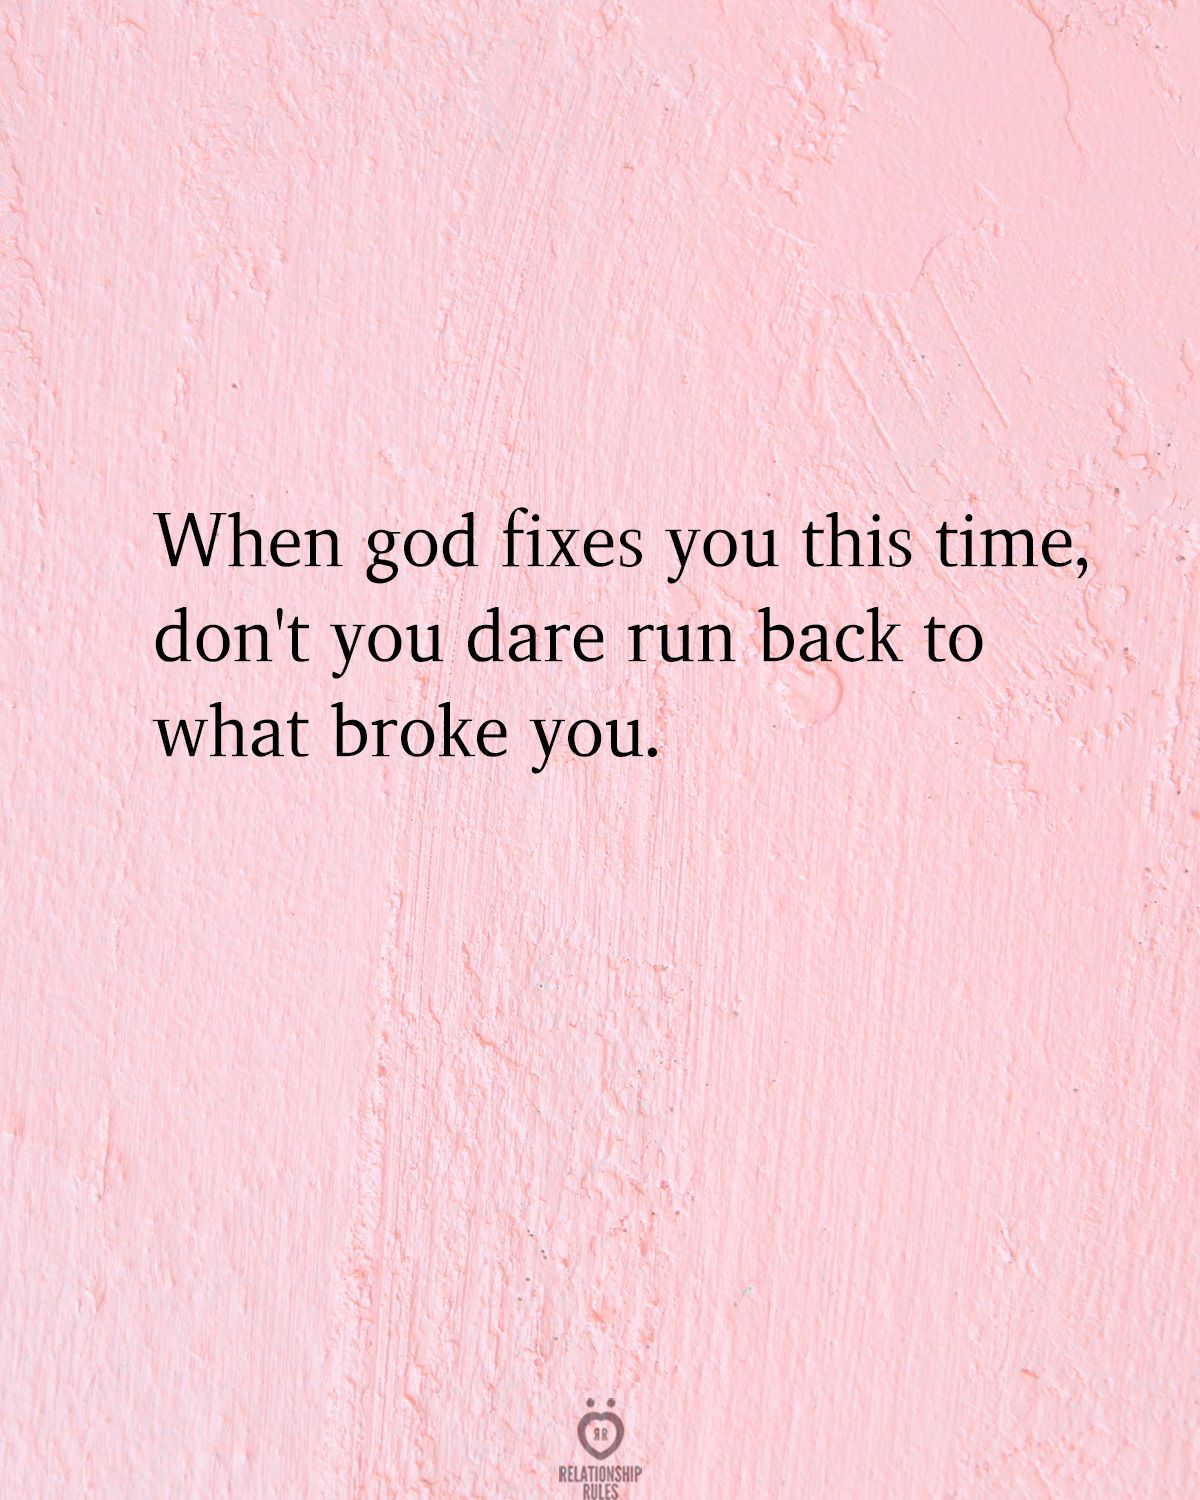 When god fixes you this time, don't you dare run back to what broke you.